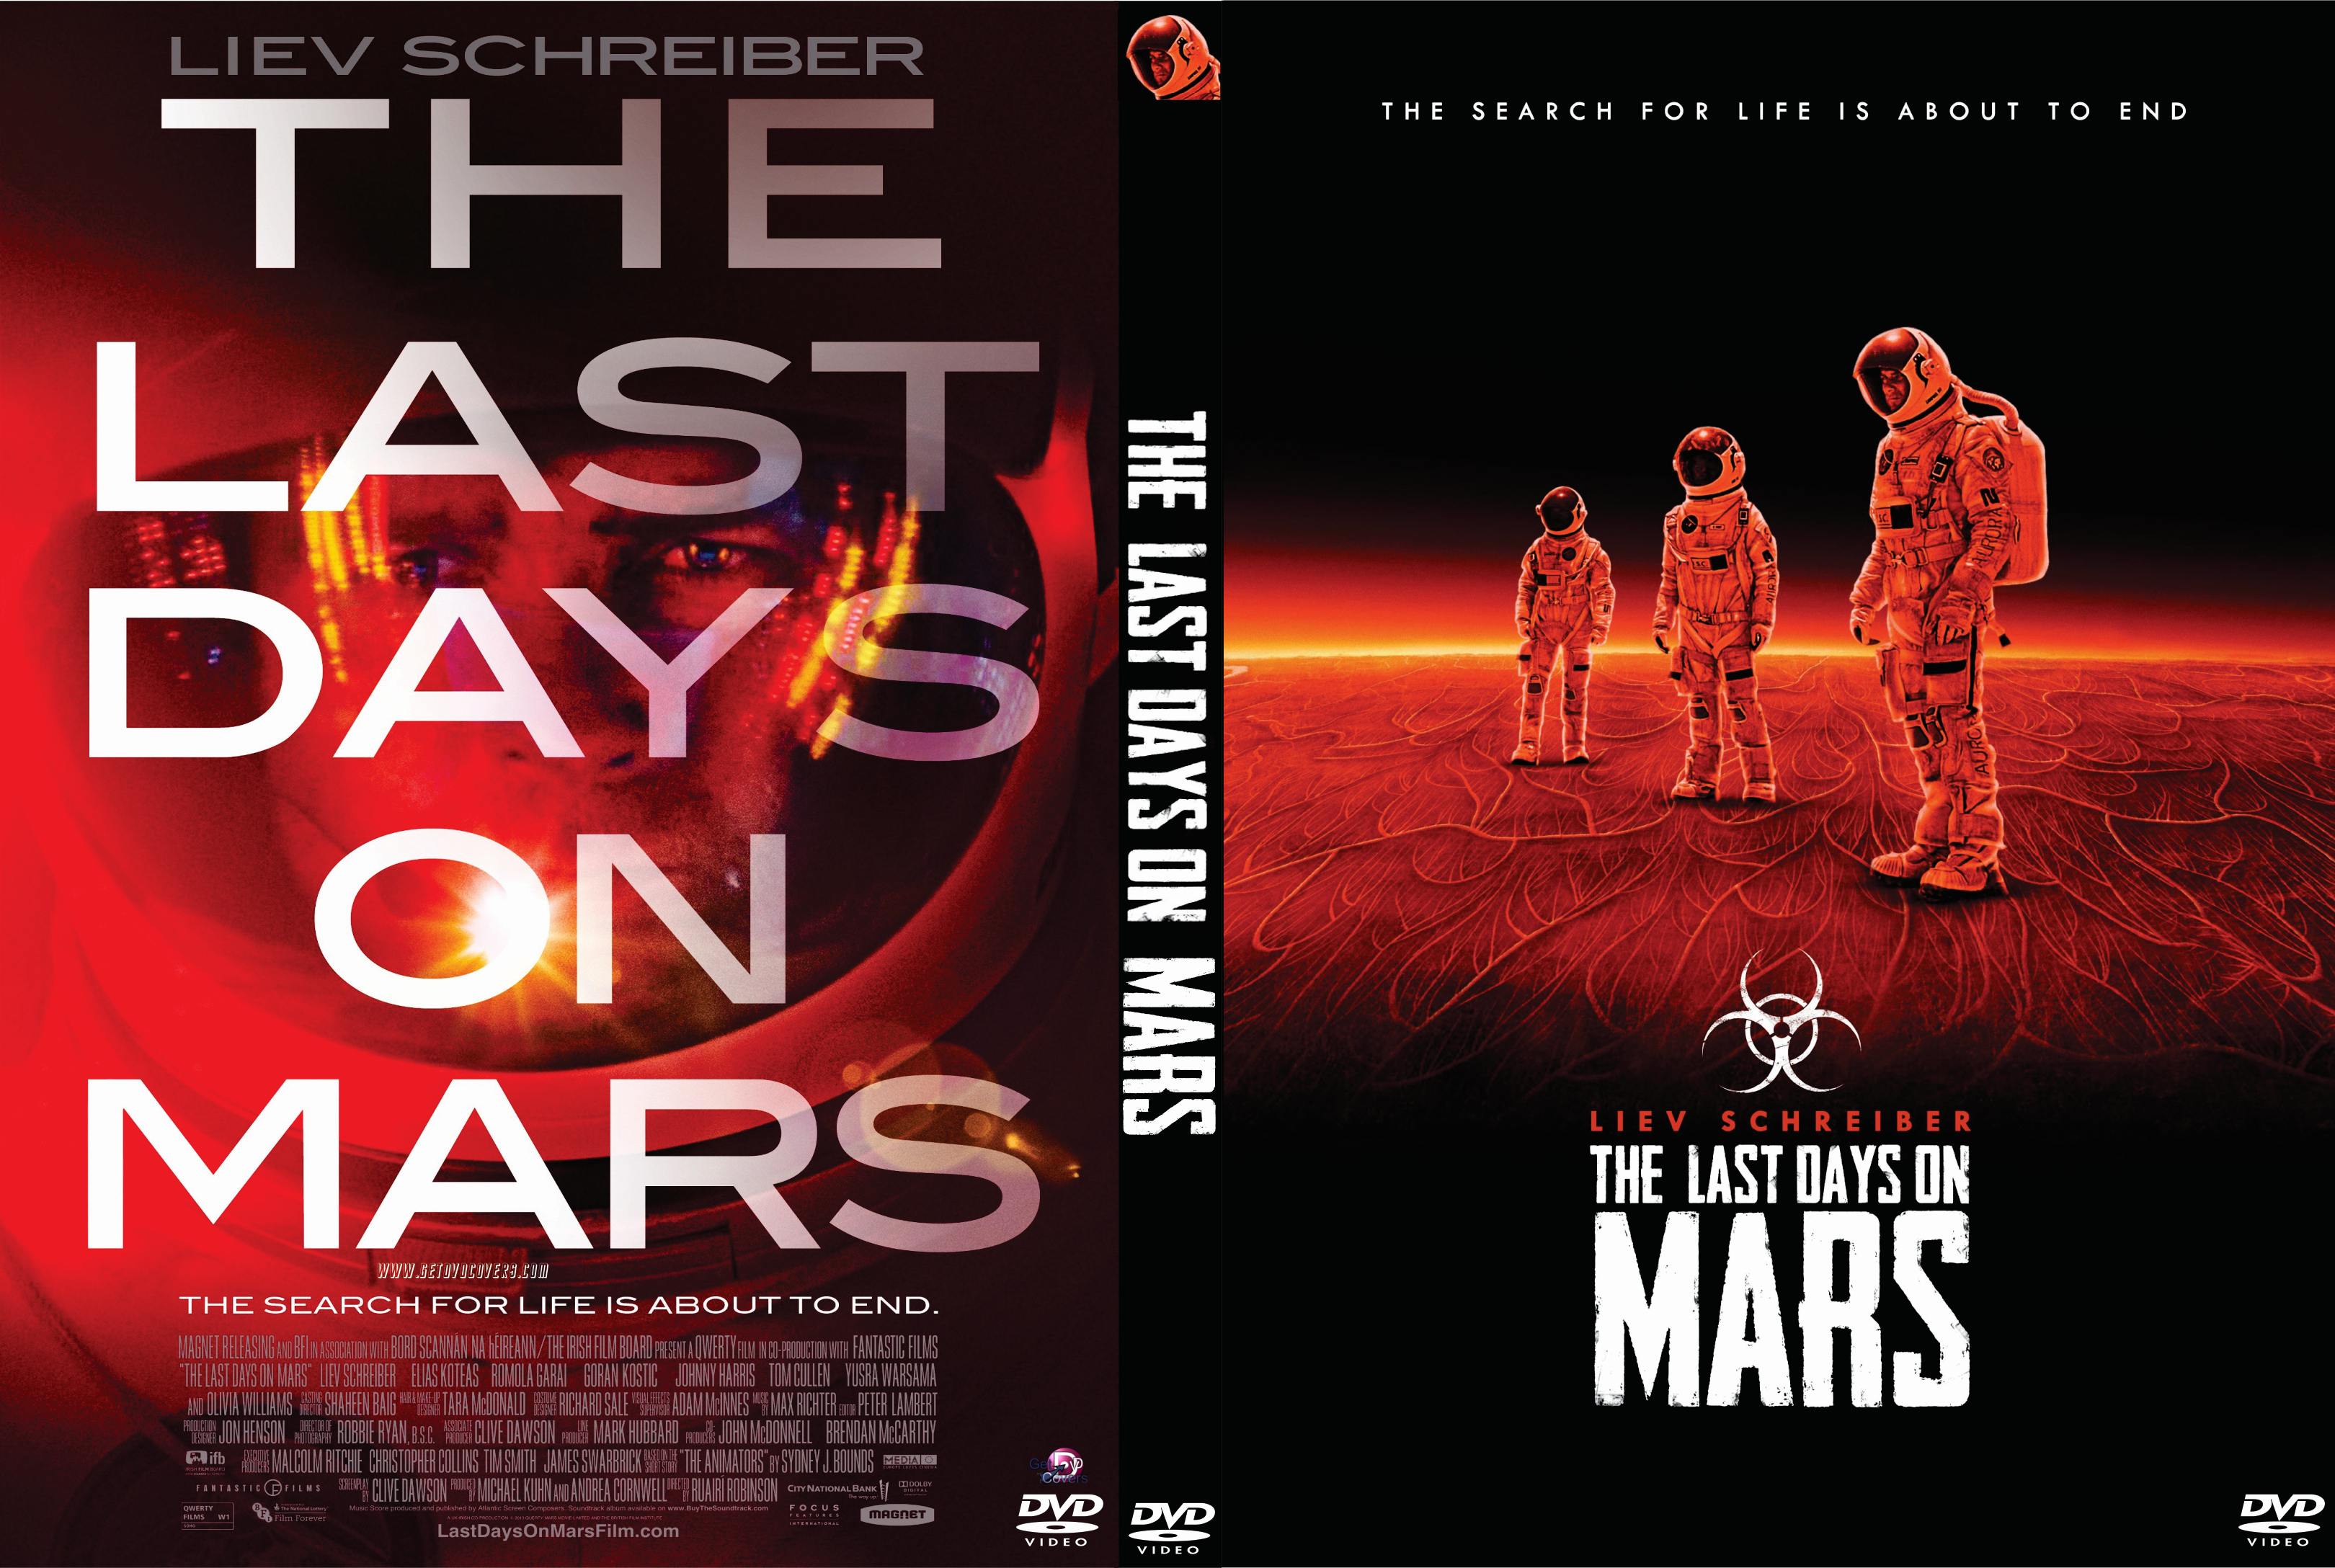 the_last_days_on_mars_2013_r1_custom-front-www-getdvdcovers-com_